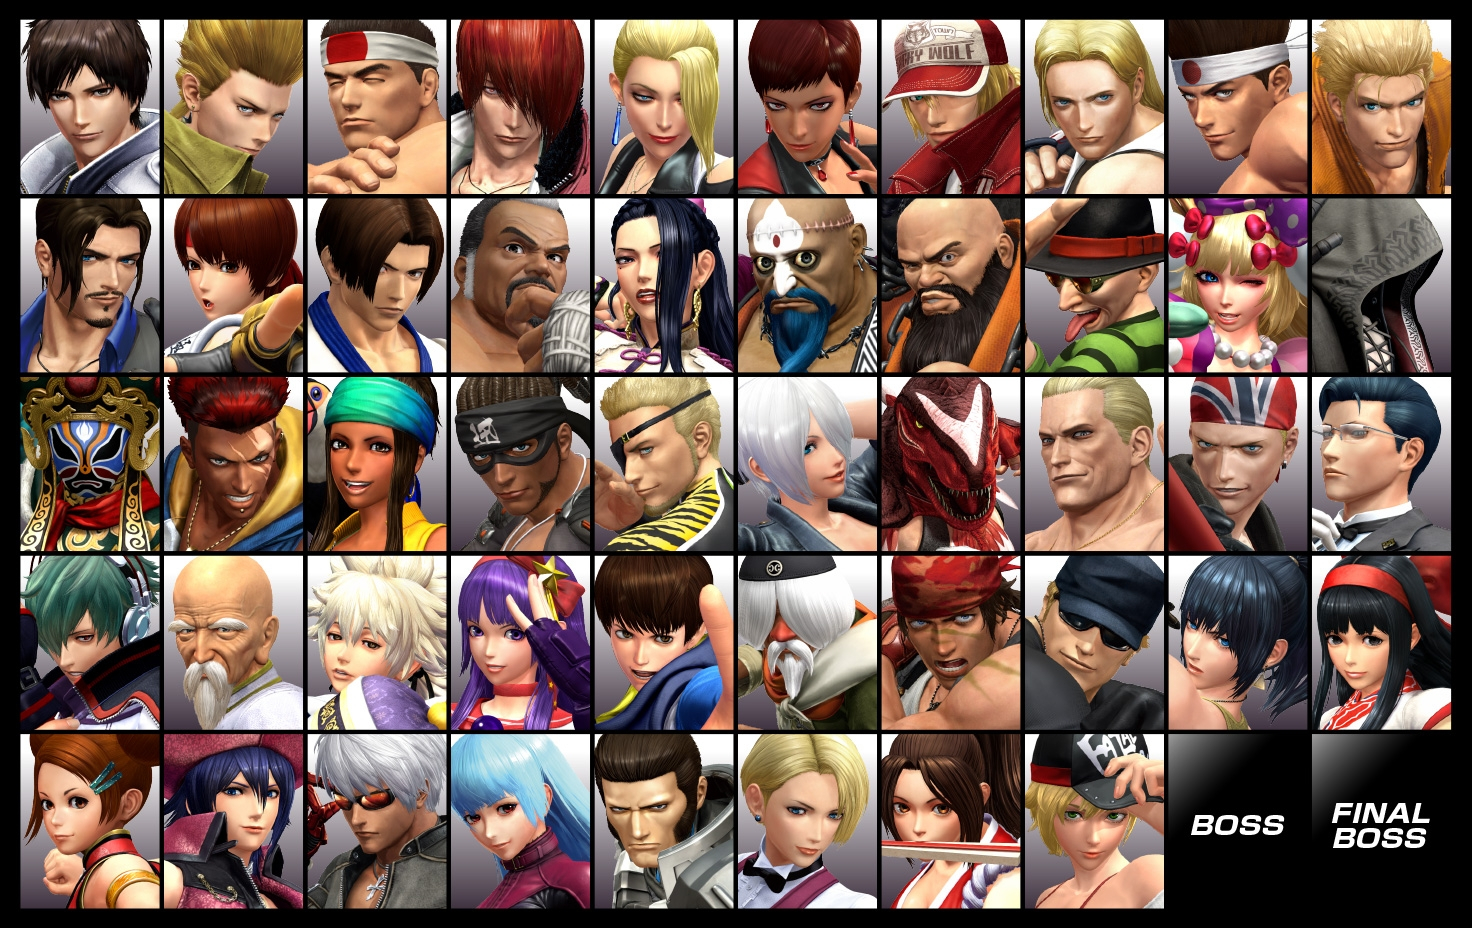 【KOF】THE KING OF FIGHTERS シリーズ総合★Part43 [無断転載禁止]©2ch.netYouTube動画>31本 ->画像>34枚